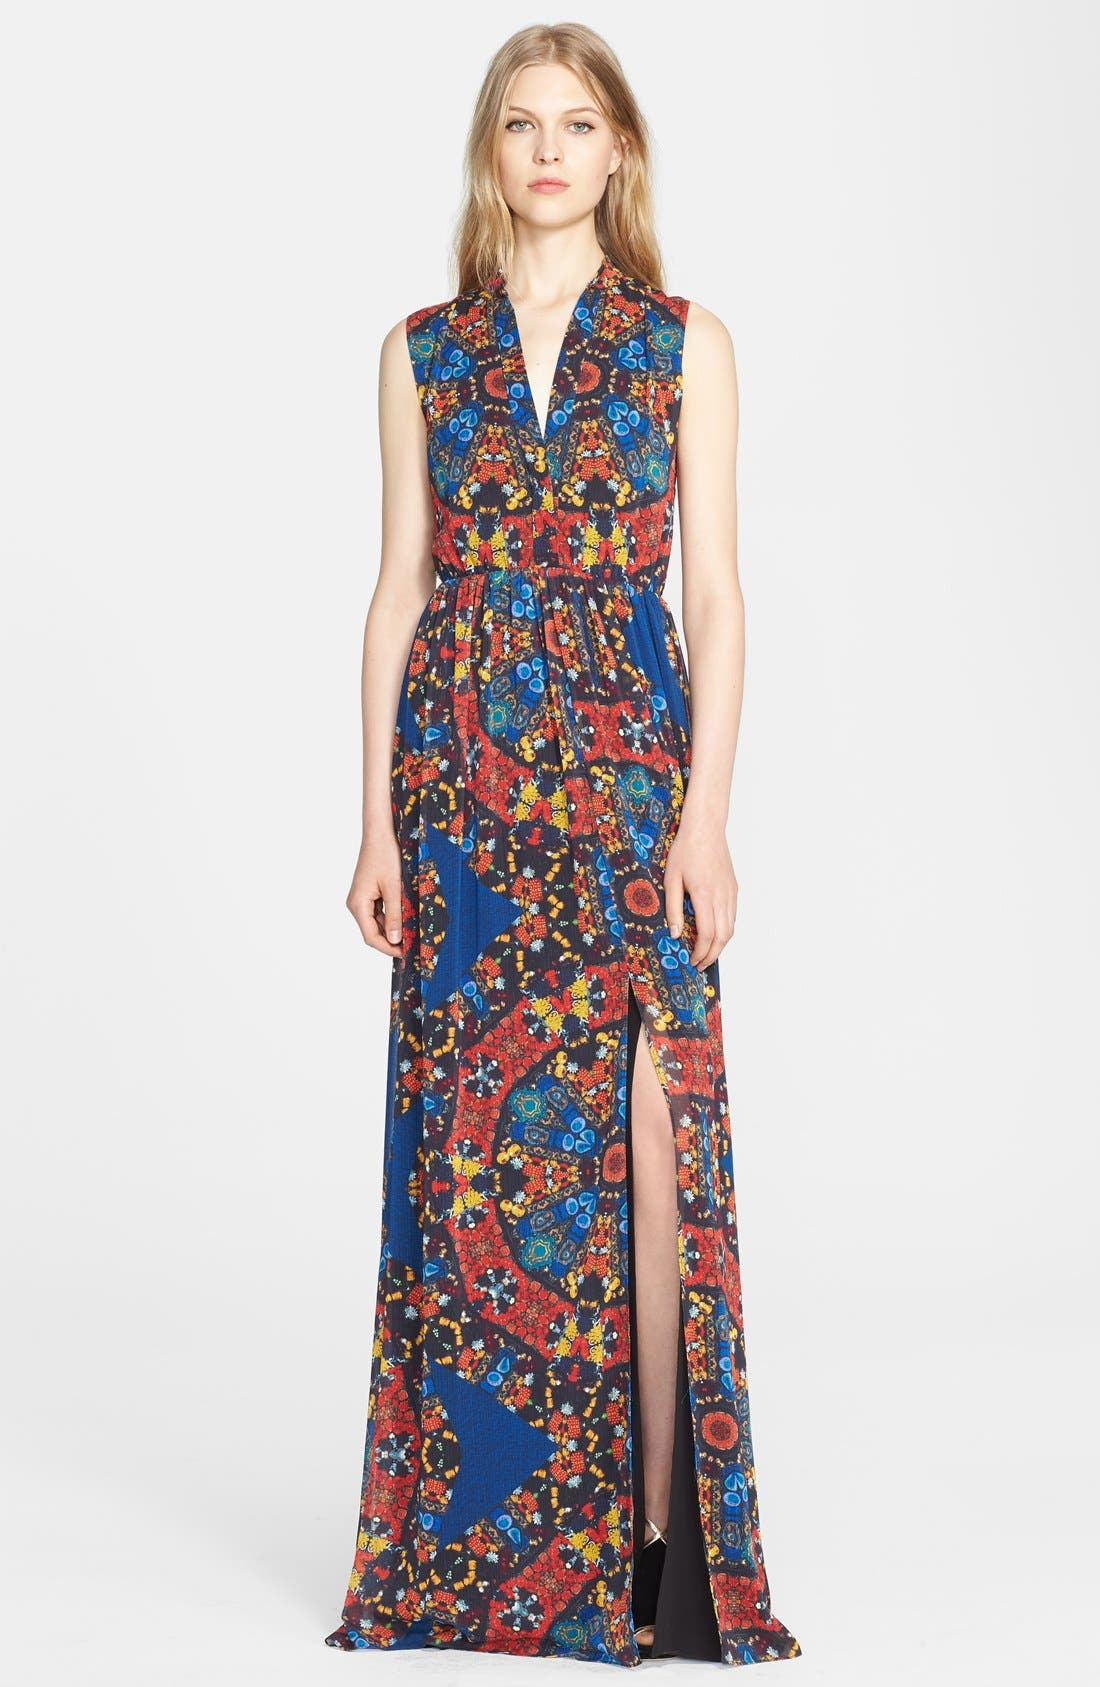 Main Image - Alice + Olivia 'Marianna' Print Crinkled Chiffon Maxi Dress